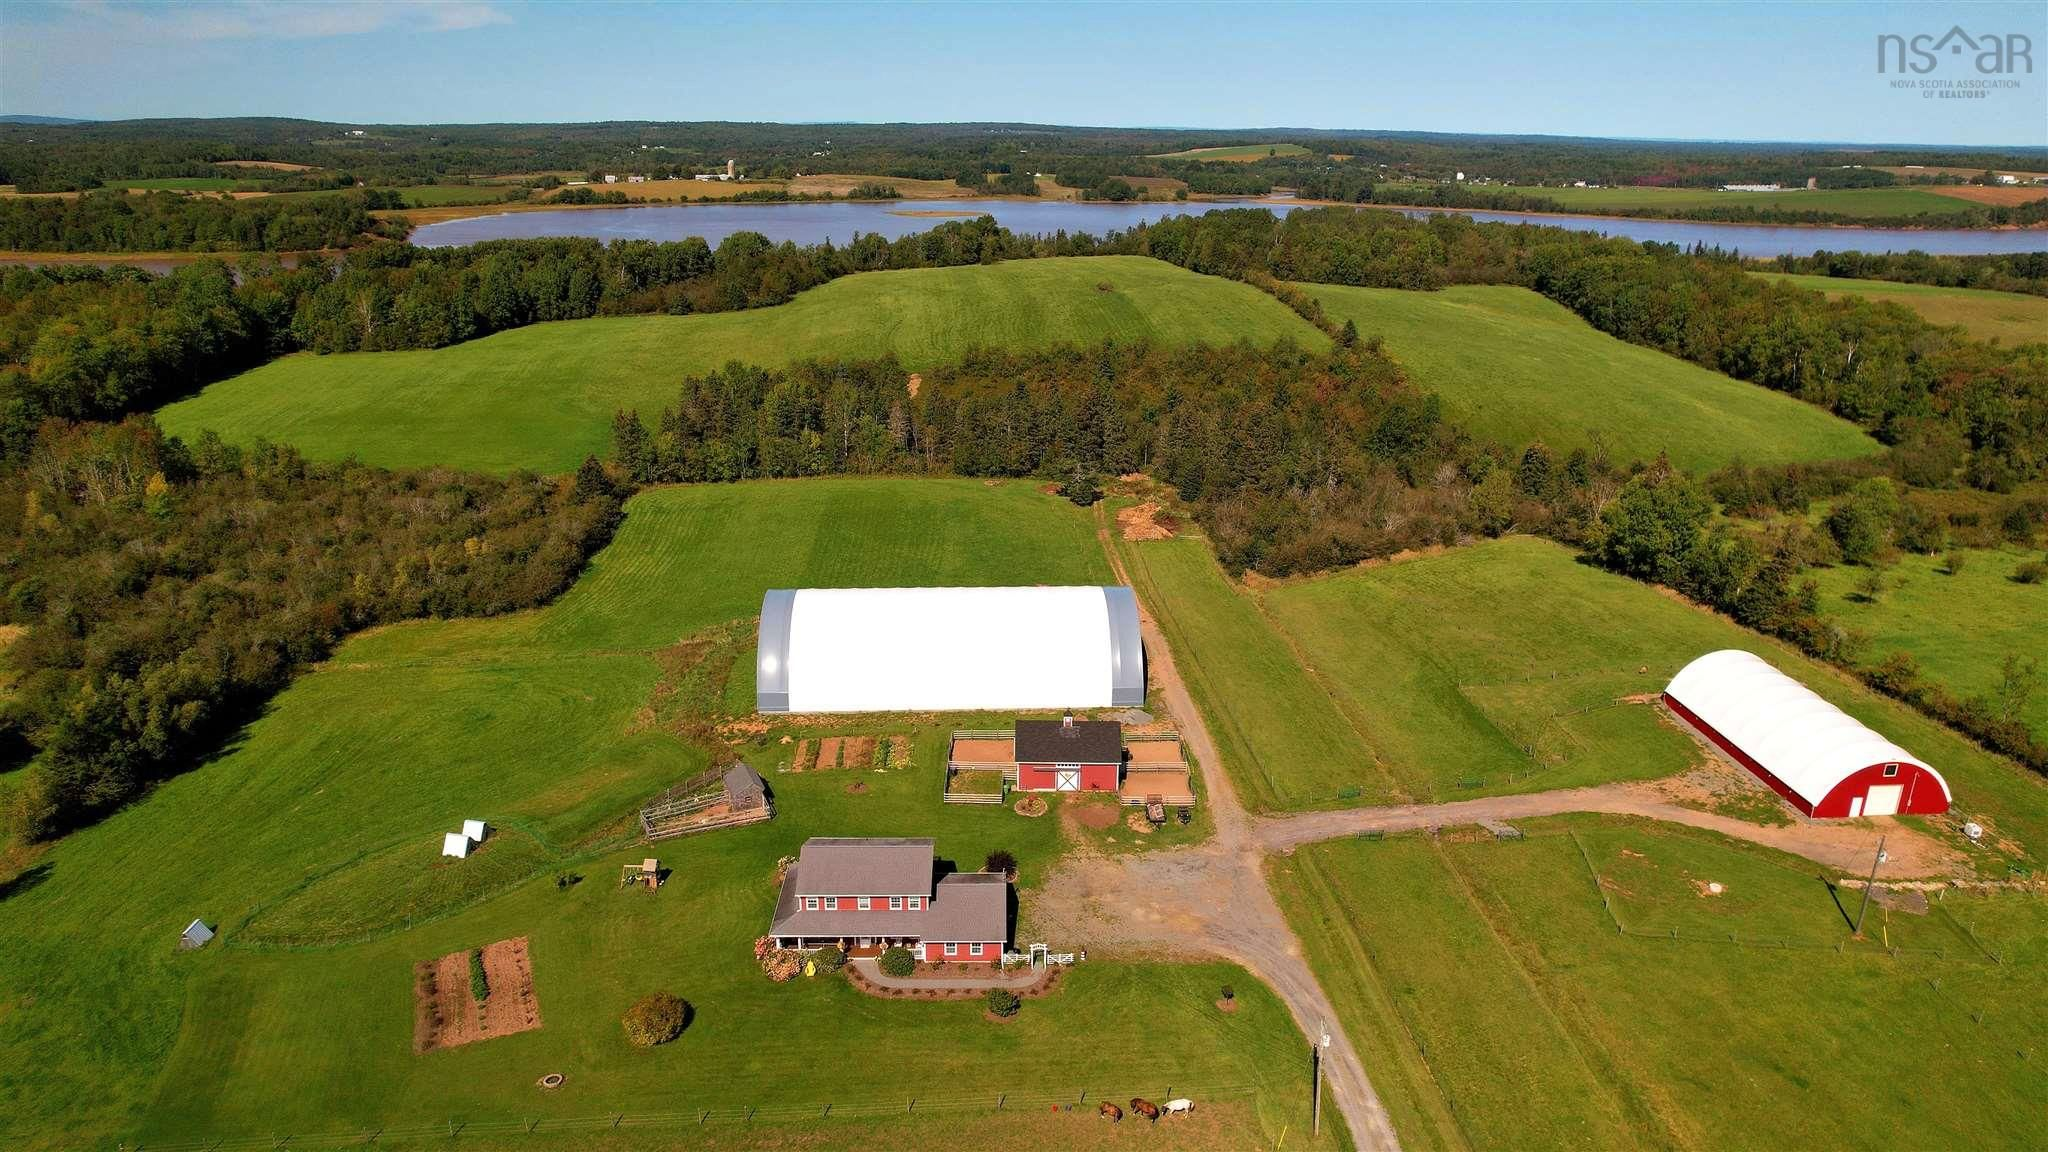 Main Photo: 697 Belmont Road in Belmont: 404-Kings County Farm for sale (Annapolis Valley)  : MLS®# 202120786